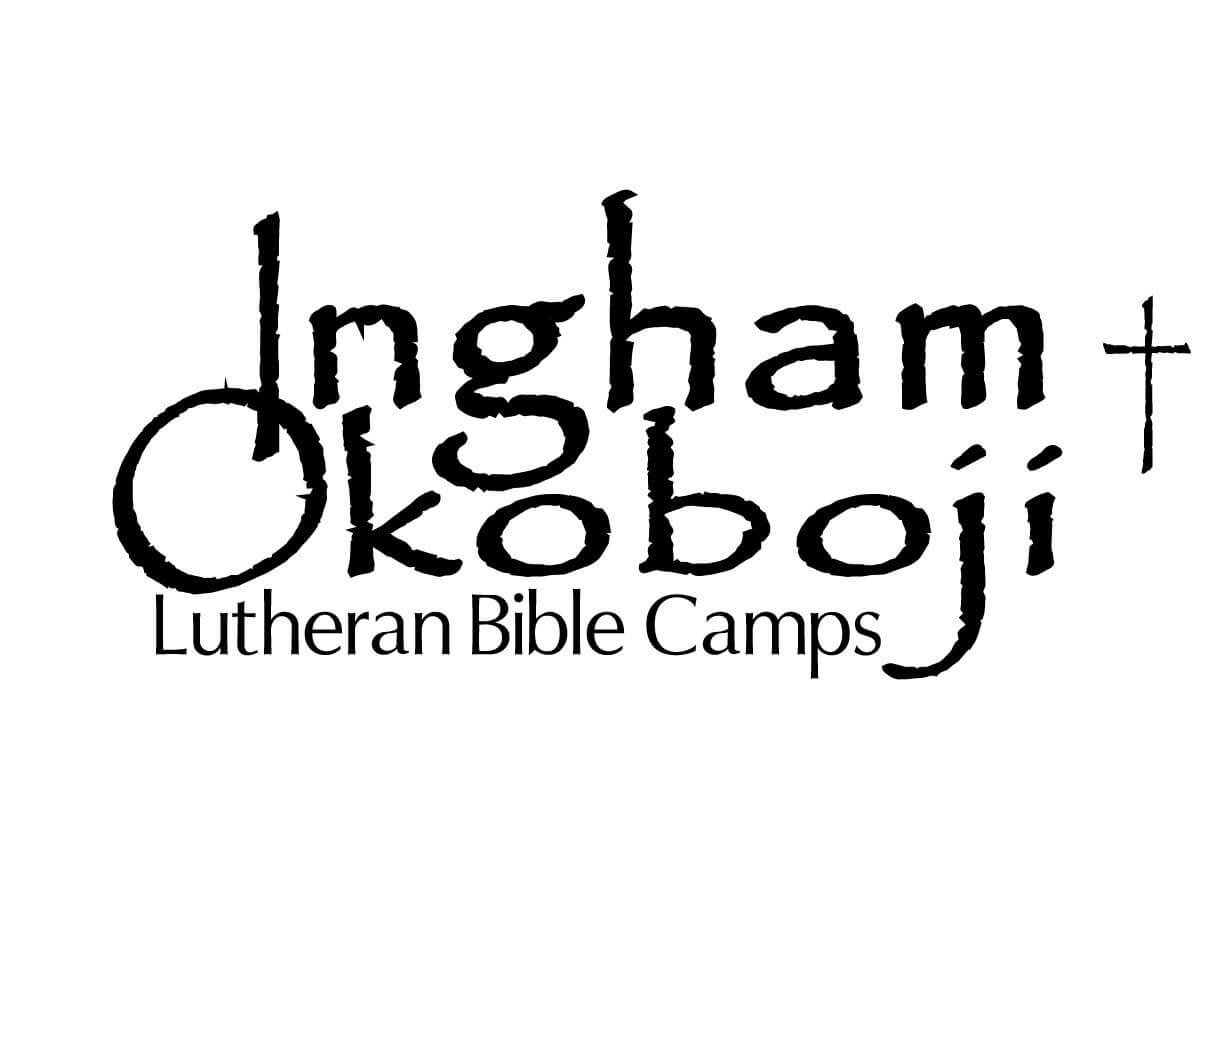 Ingham Okoboji Luthern Bible Camp